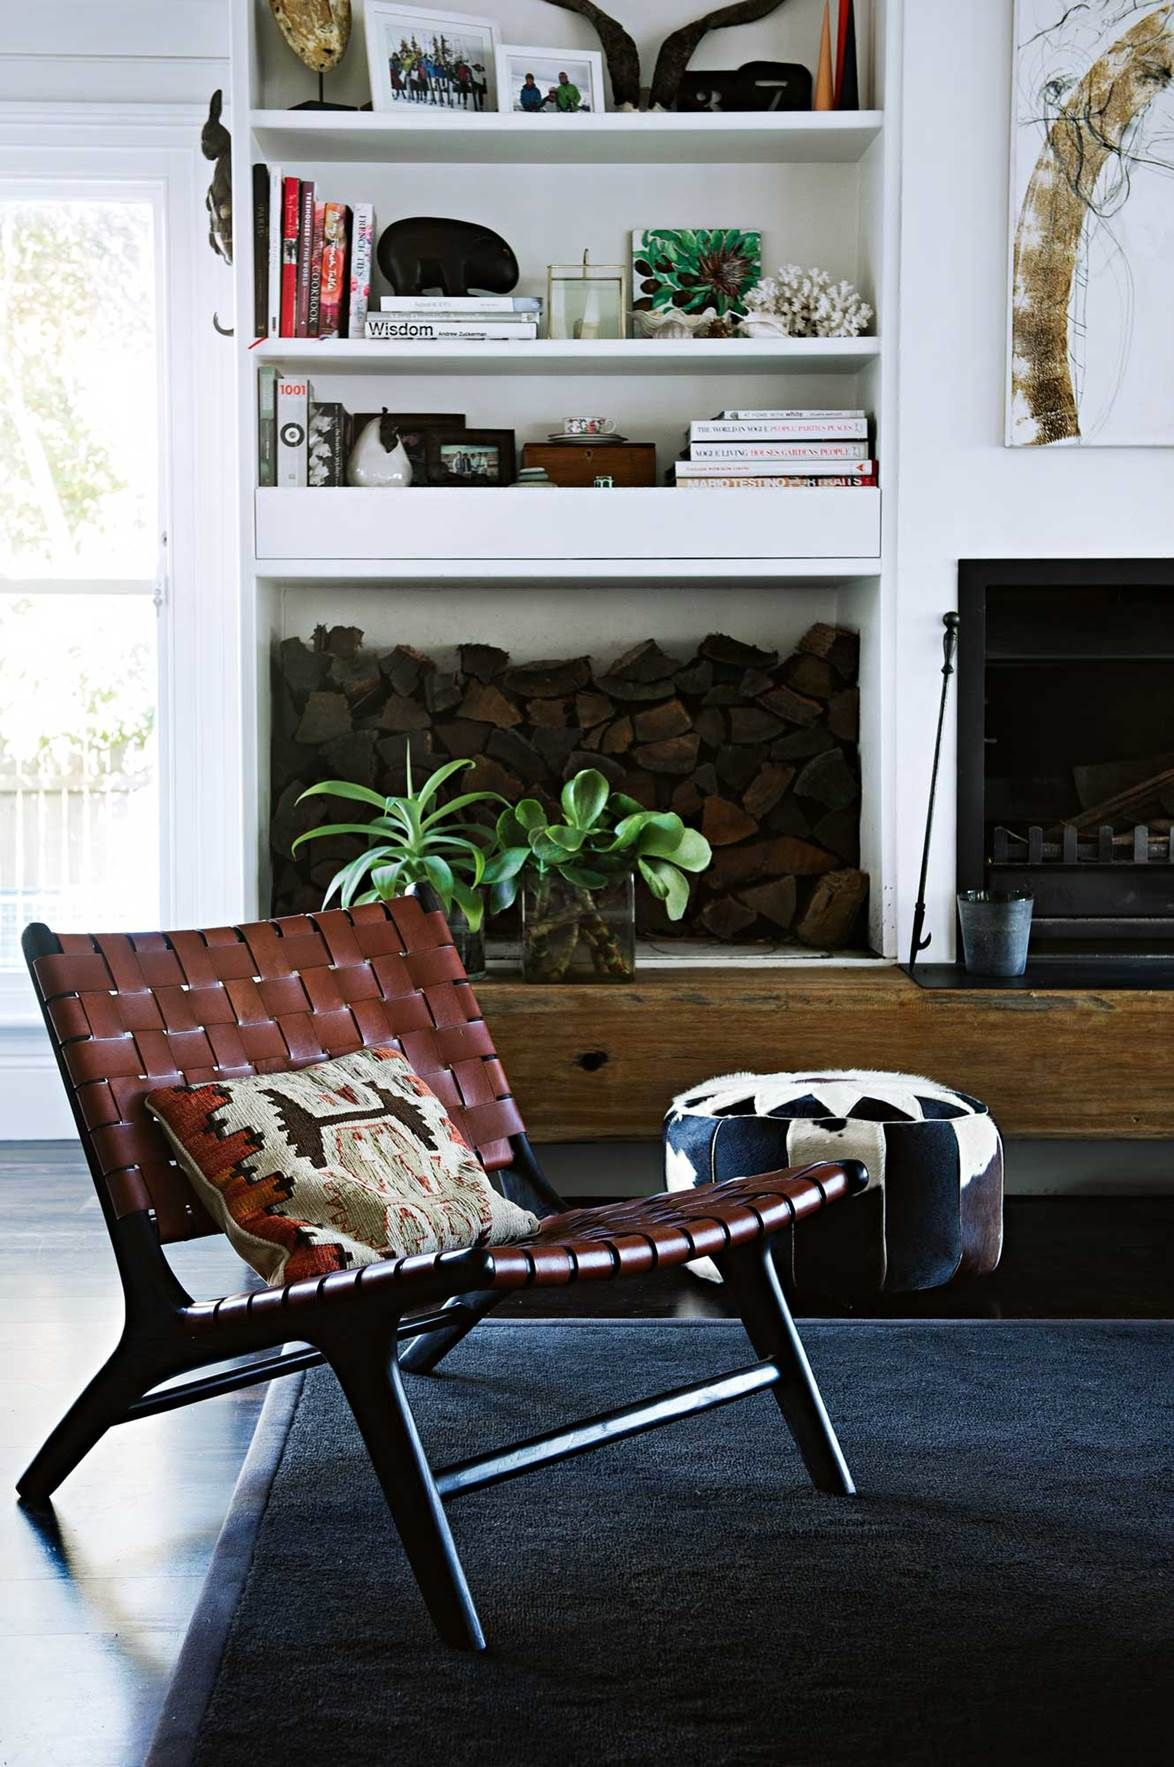 In the living room a solid timber shelf provides a hearth for the fireplace as well as storage for wood logs a woven chair is a nod to mid century modern